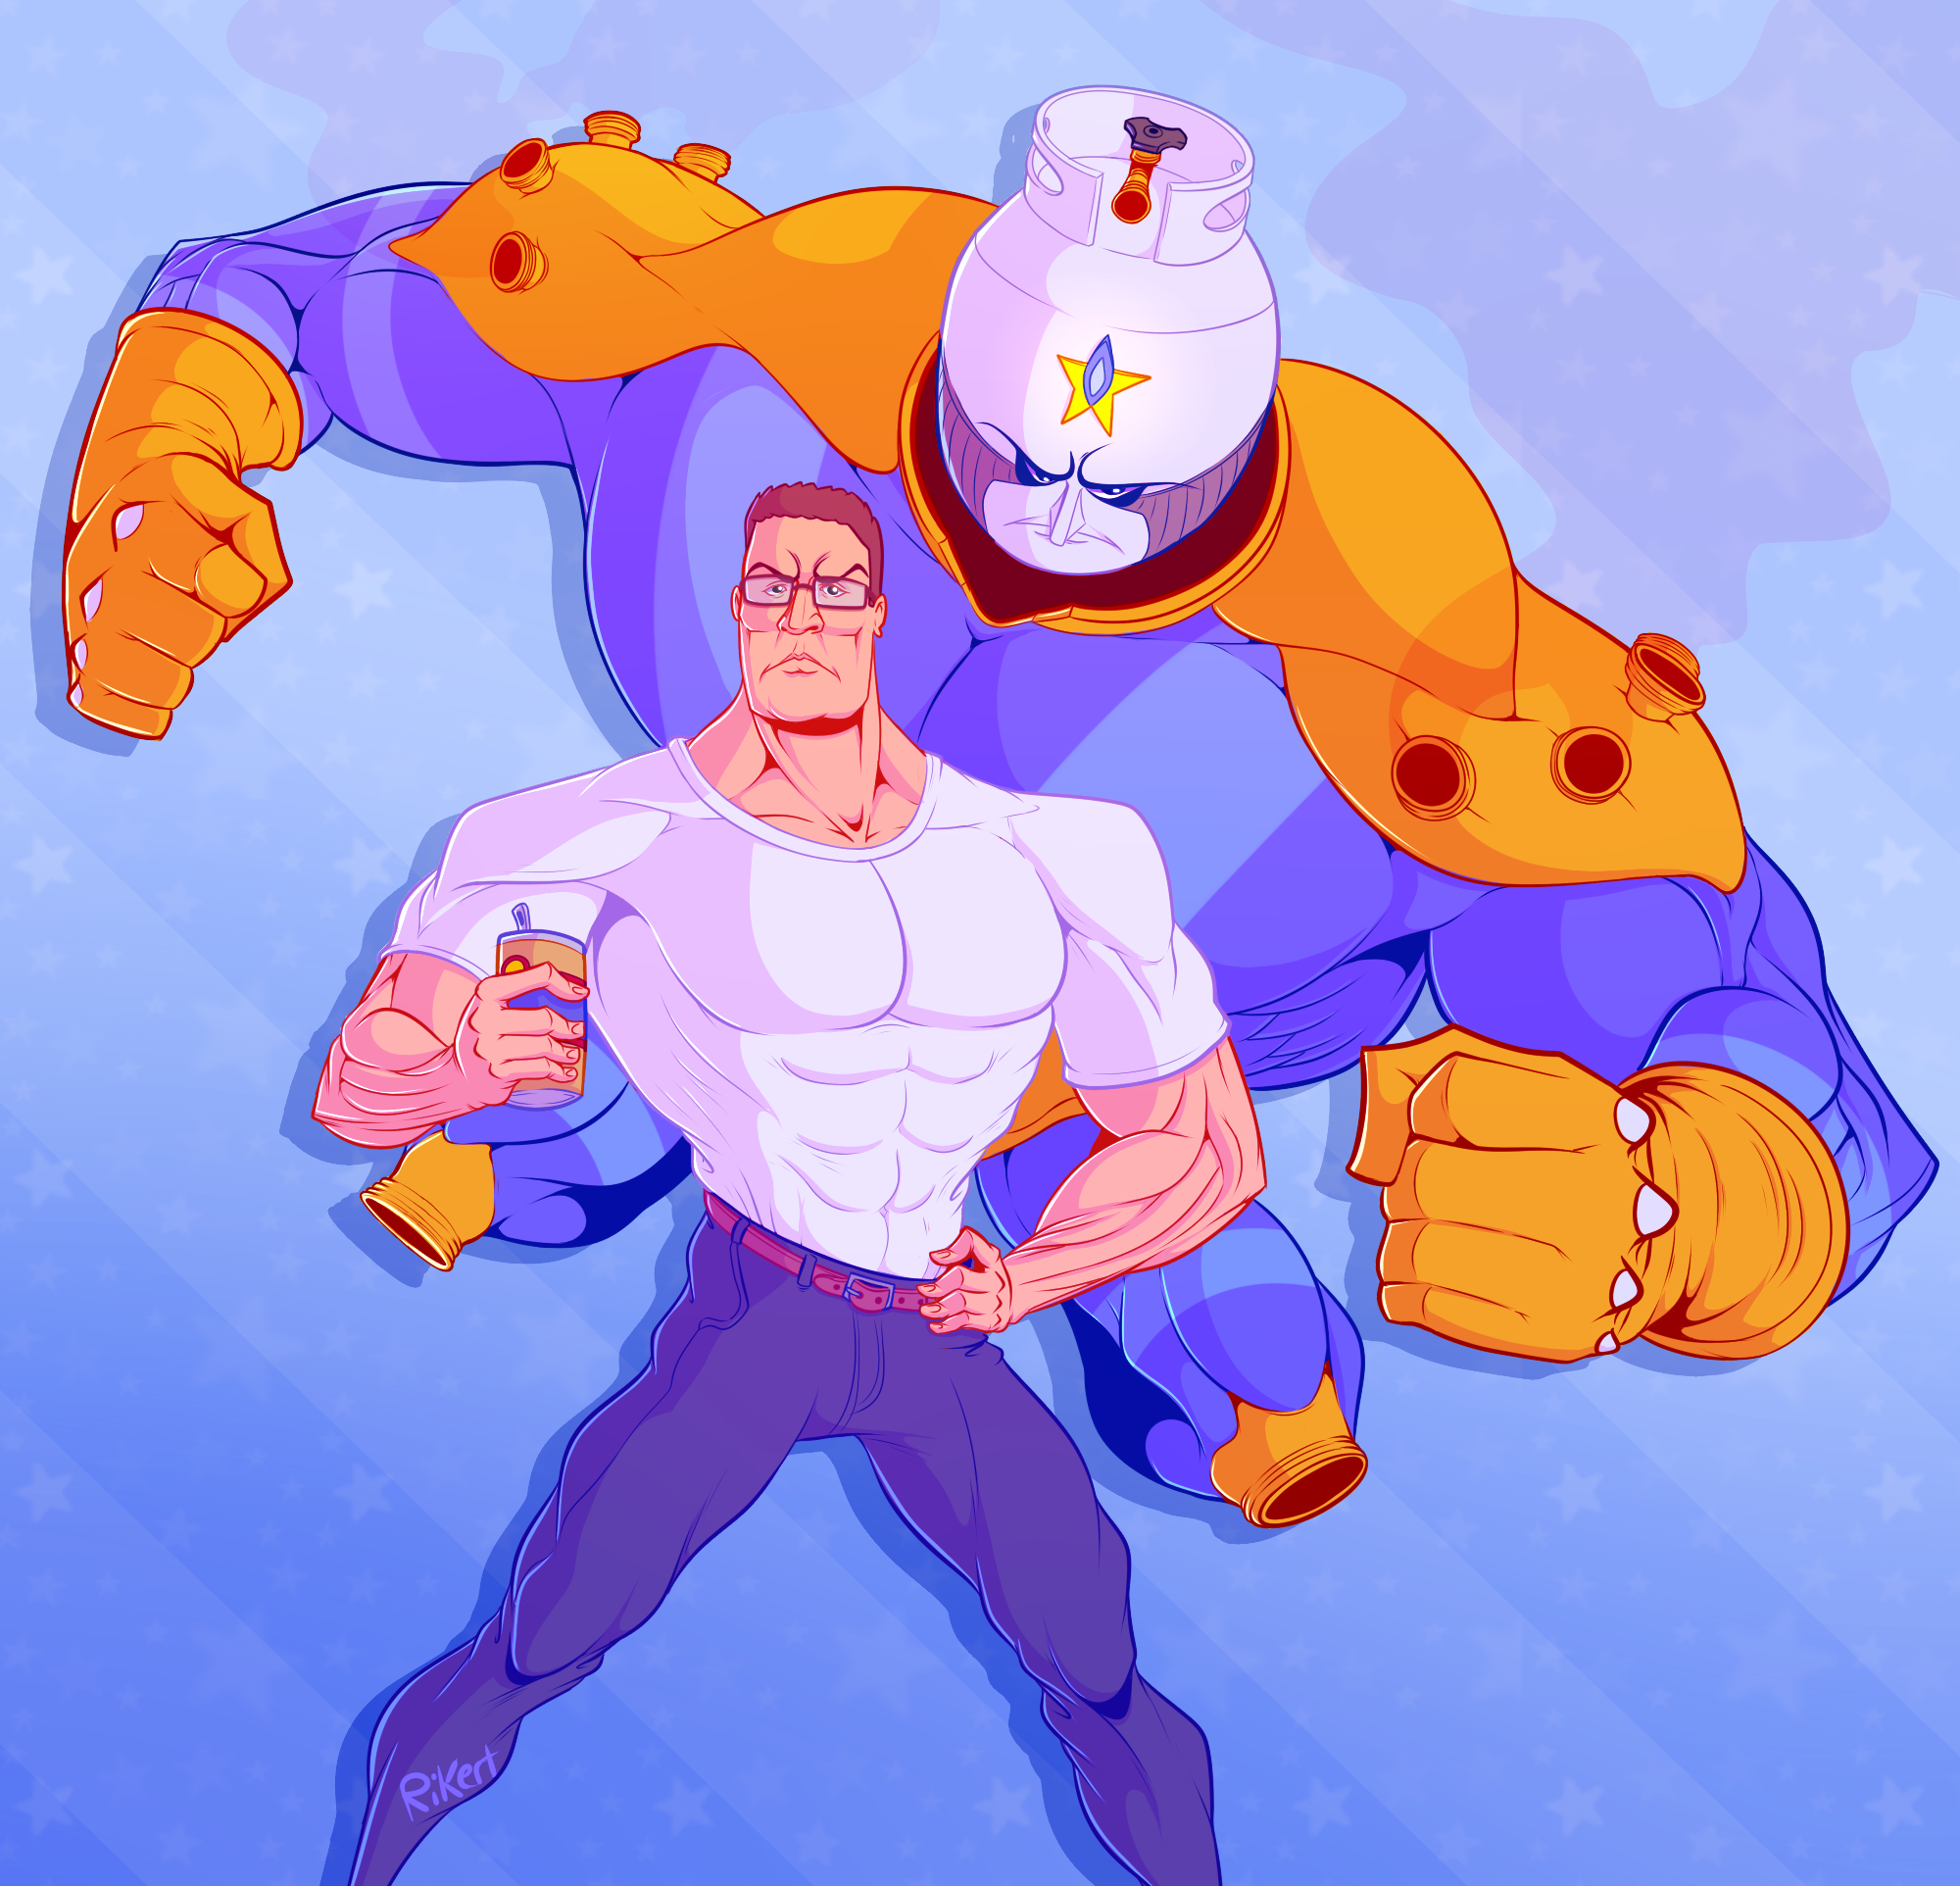 King of the Hill x Jojo's Bizarre Adventure